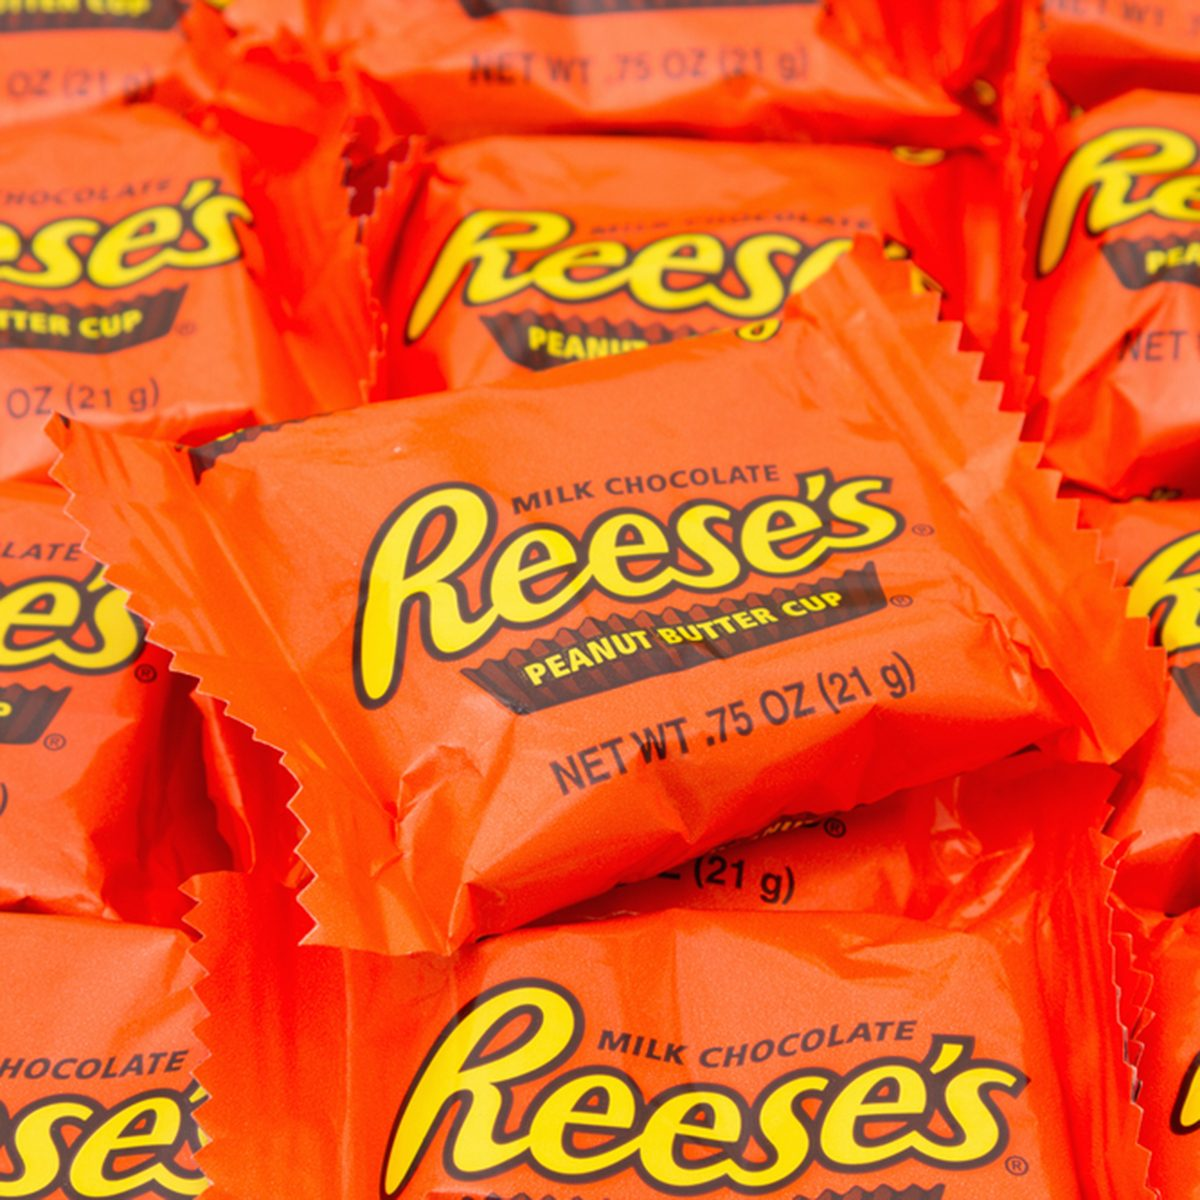 Reese's Peanut Butter Cup Candy Background